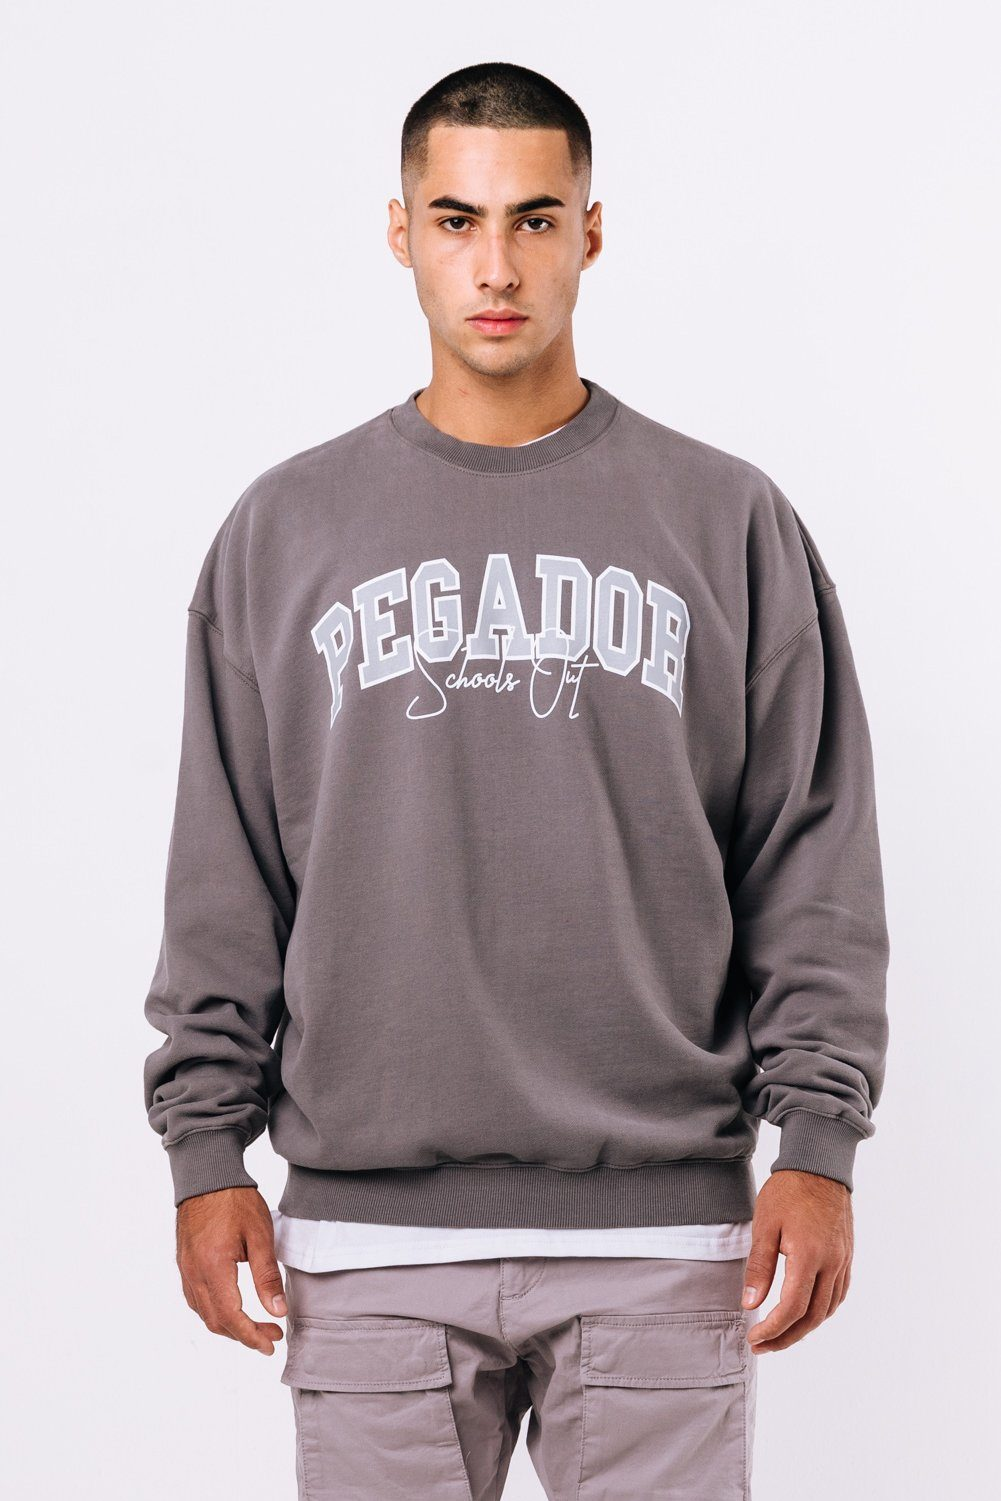 Vista Oversized Sweater Washed Charcoal Grey